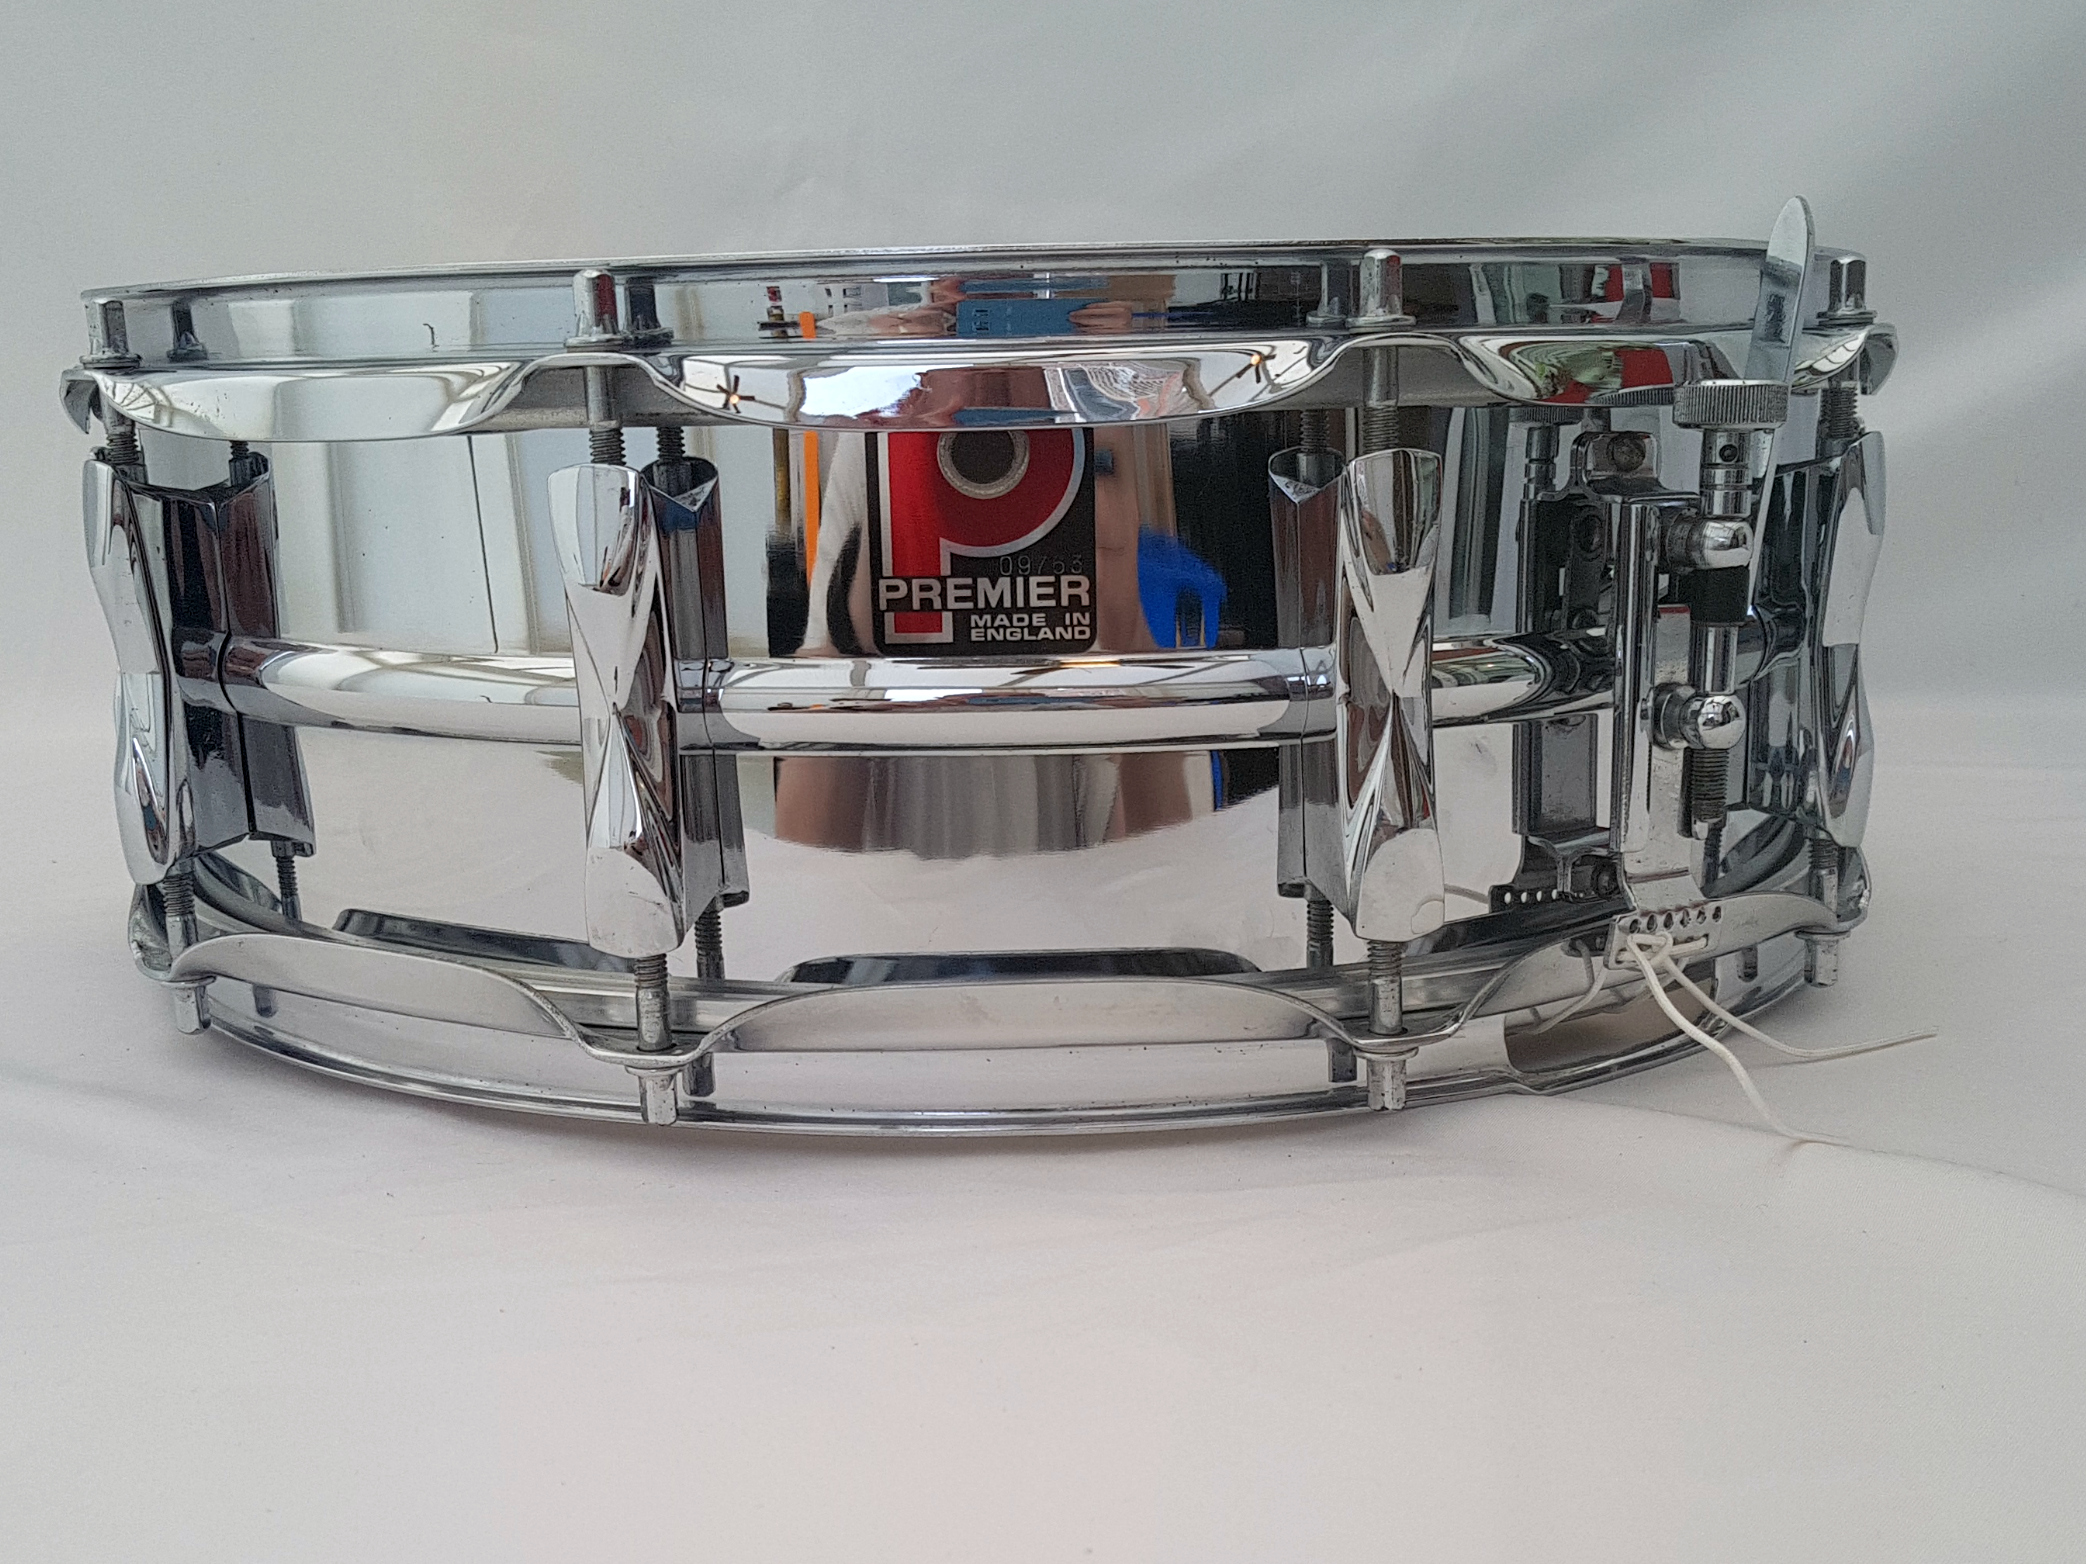 Refurbished Premier 1035 Snare Drum